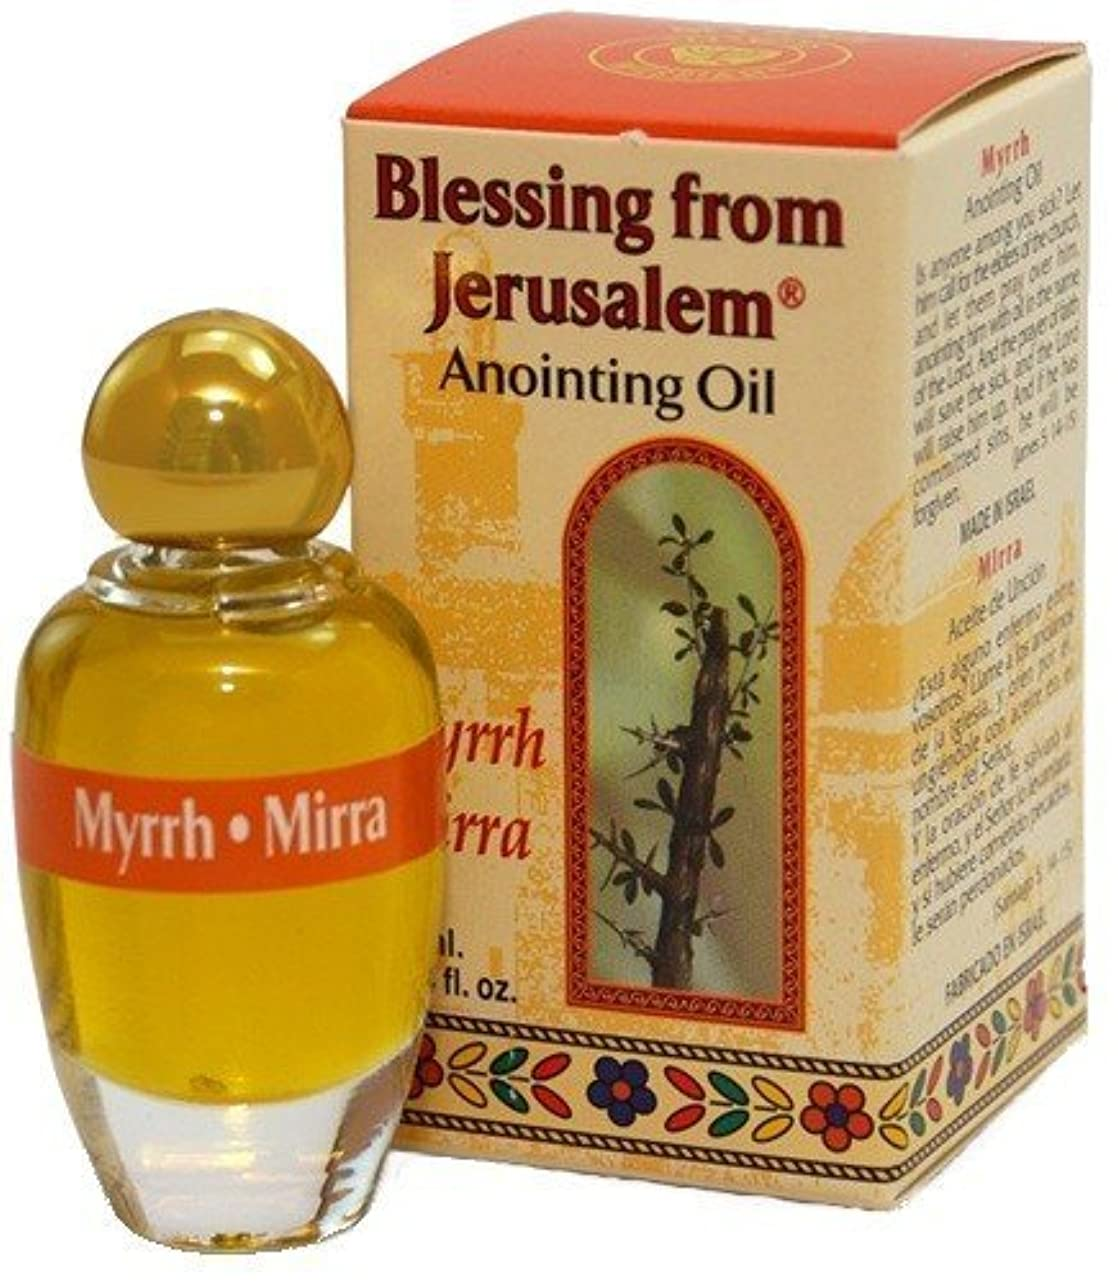 中性池下線Myrrh Anointing Oil - Made in Israel by Ein Gedi [並行輸入品]